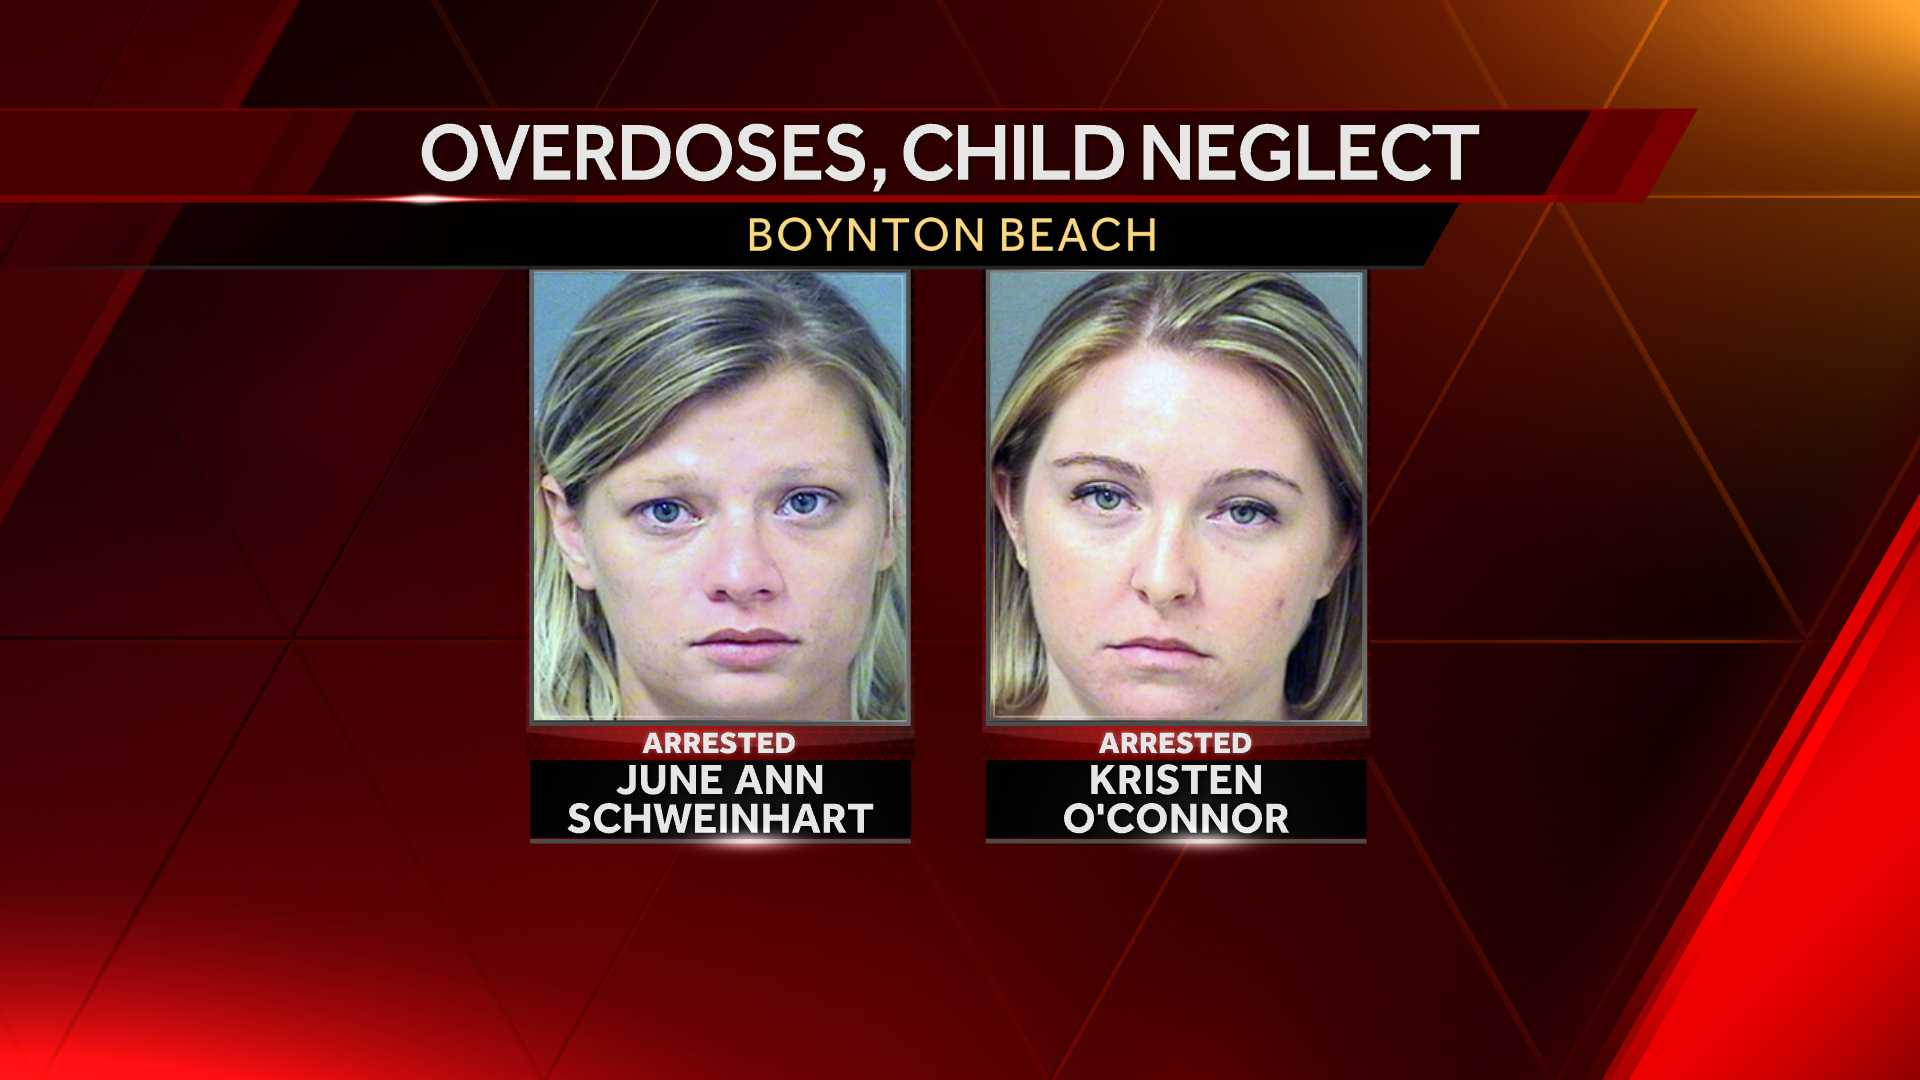 Florida Mothers Arrested After Allegedly Overdosing on Heroin With Babies in Backseat